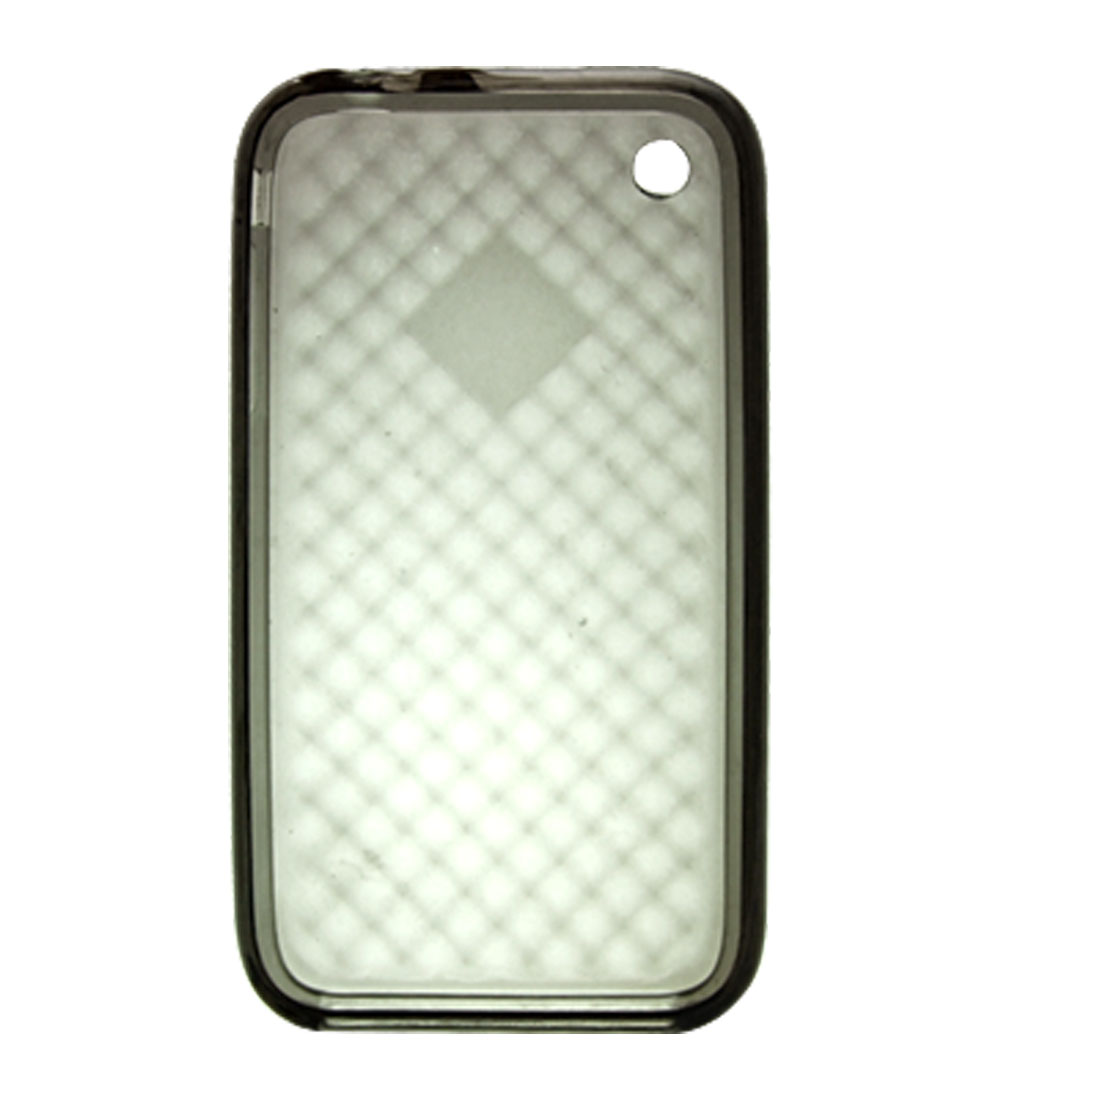 Anti-slip Inner Gray Soft Plastic Case Clear Back Cover for iPhone 3G